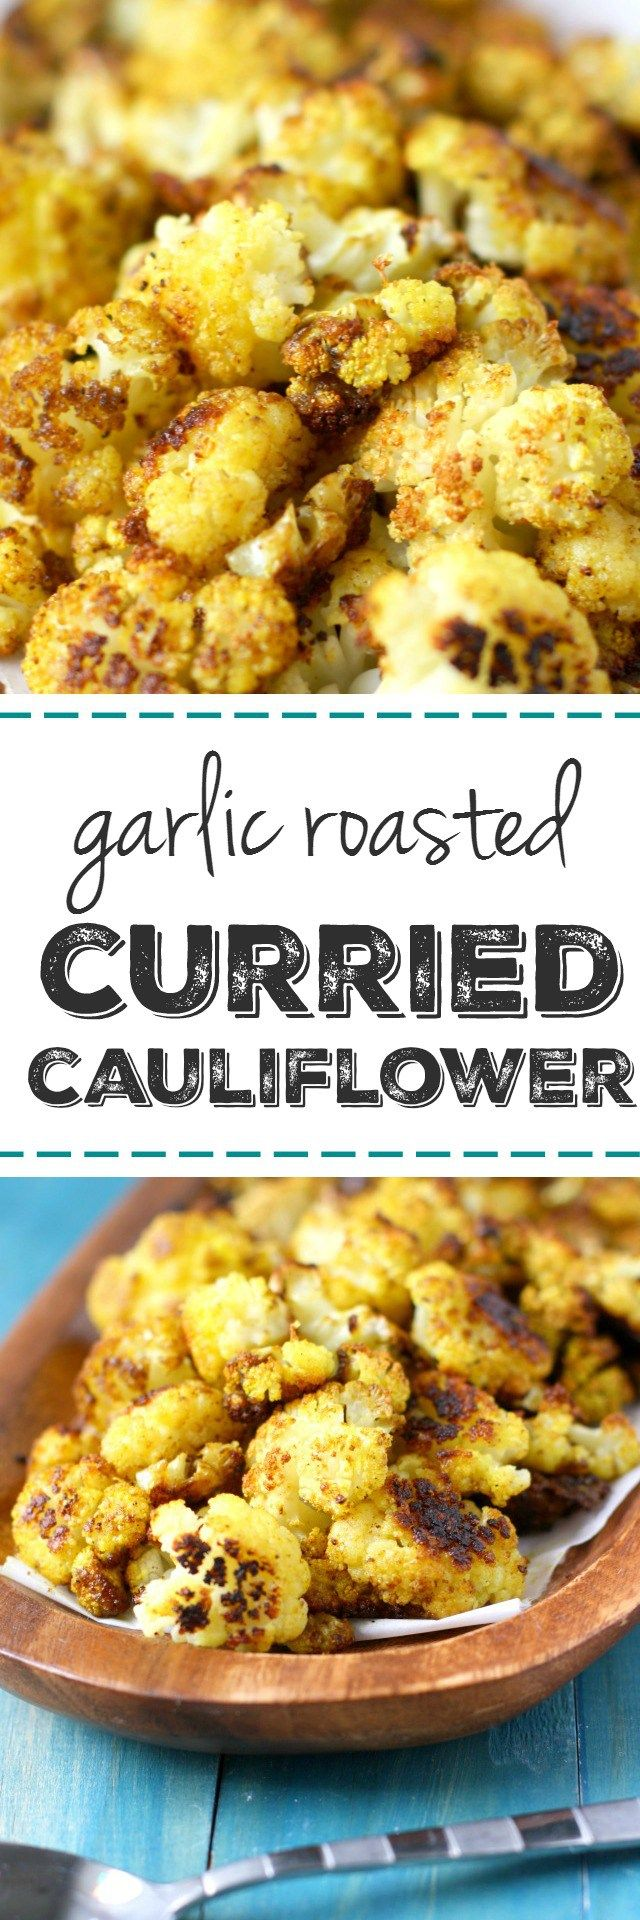 **Roasted garlic curried cauliflower **Could eat on the daily! I kind of amalgamated this with recipe I tried last night (cauliflower addiction in full swing!) & wasn't v sure it would work but wow did it ever! First bite..boyf. stated it was amazing. Didn't use garam masala, just curry powder, & didn't measure anything..shoot me! (1/4 olive oil seemed way excessive!) I tossed it all together & threw light layer of jalapeño Monterey Jack on top & baked. Enjoyed this side more than the…